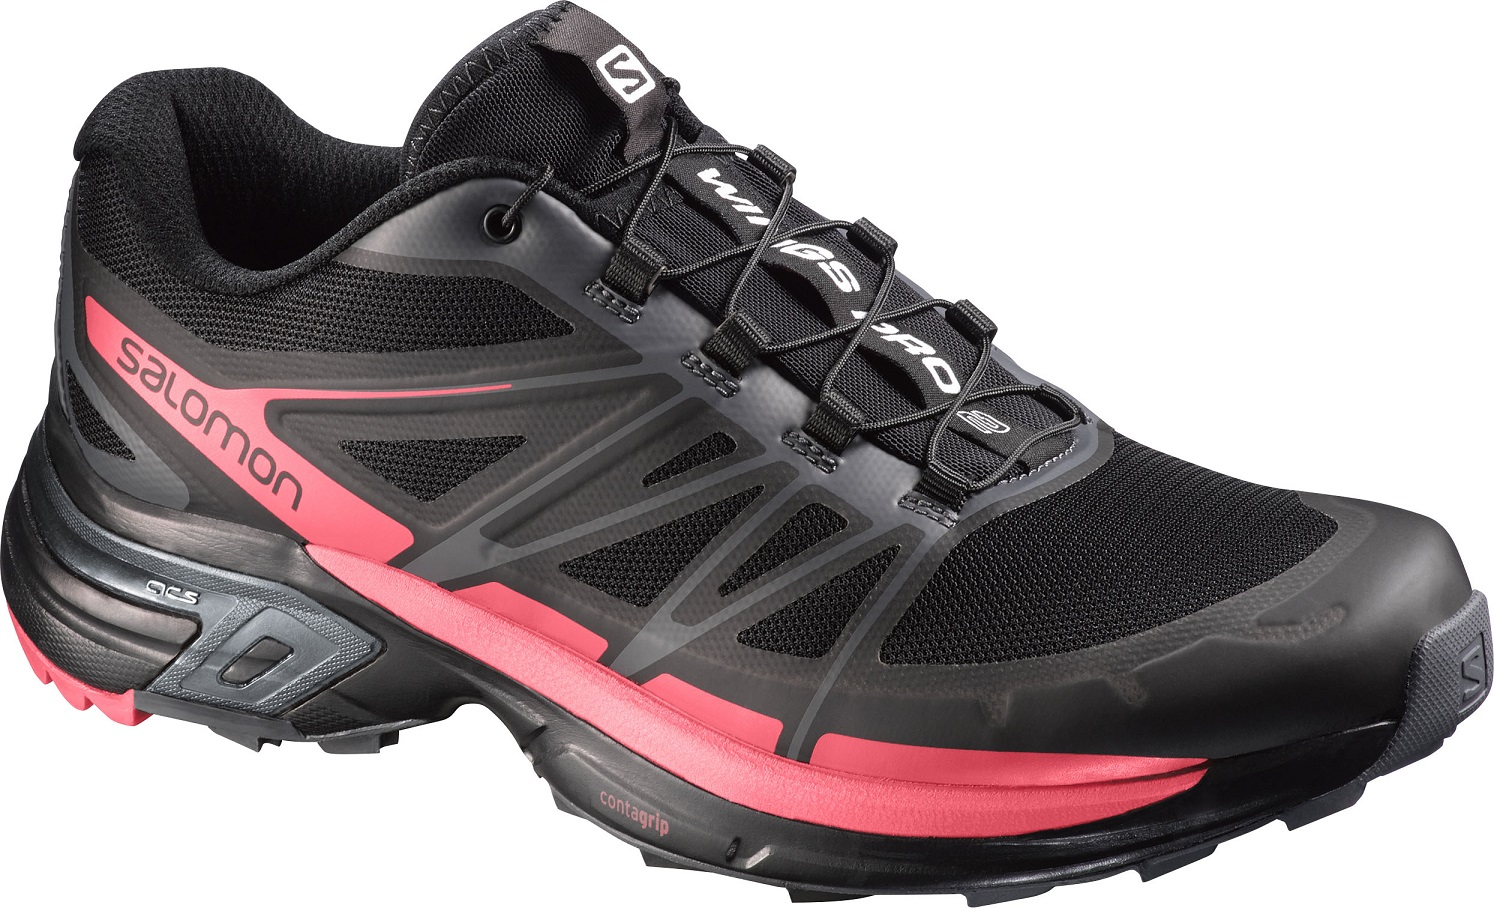 Salomon Chaussure Femme Wnuo018qup Trail Wnuo018qup kiTZuOXP